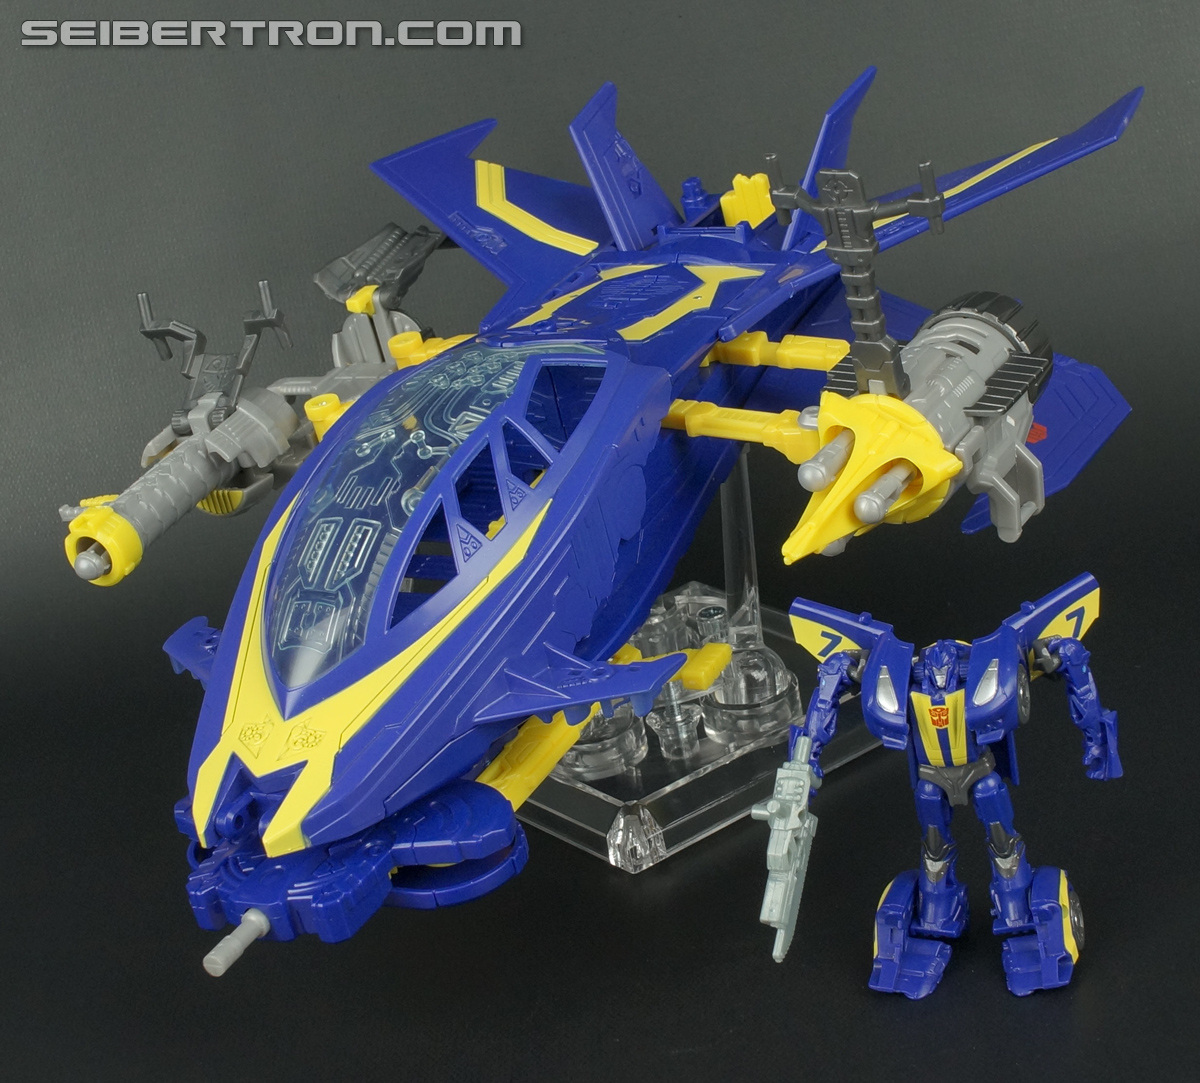 Transformers Prime Beast Hunters Cyberverse Sky Claw (Image #62 of 83)